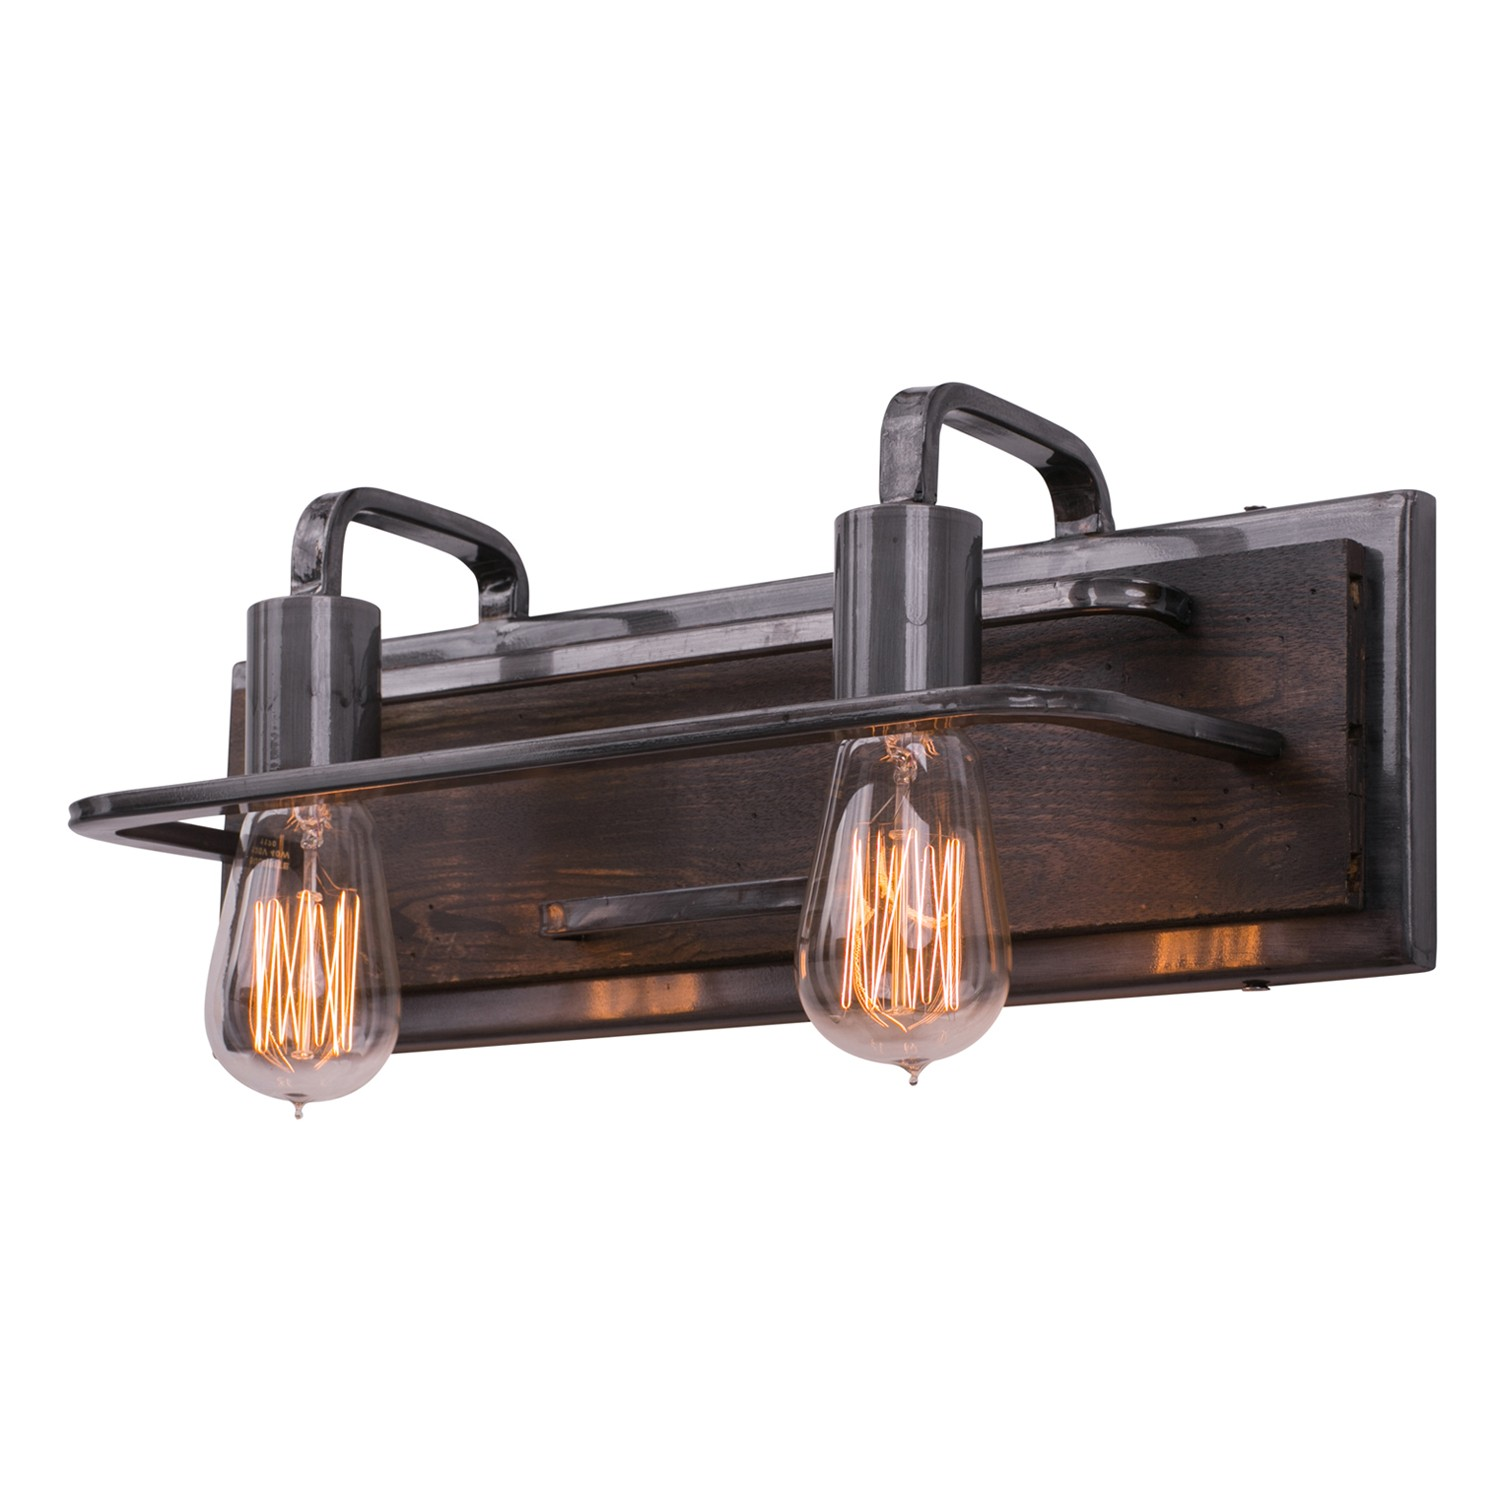 modern lighting fixture. Industrial Modern Lighting |YLighting Fixture T